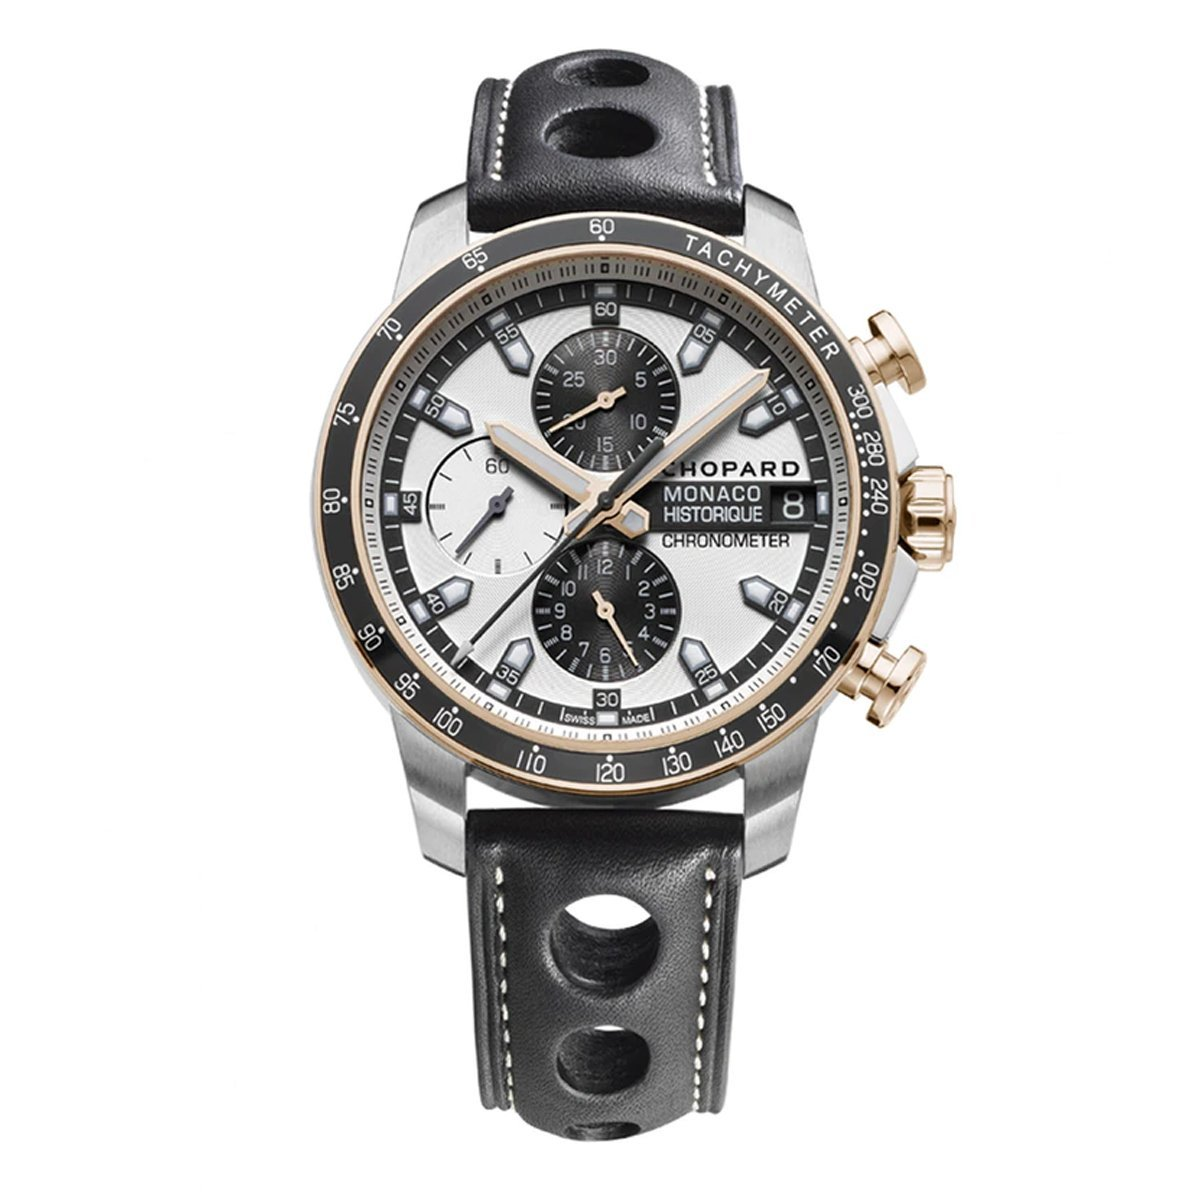 Chopard Grand Prix Monaco Historique Chronograph Men's Watch Titanium - Watches & Crystals